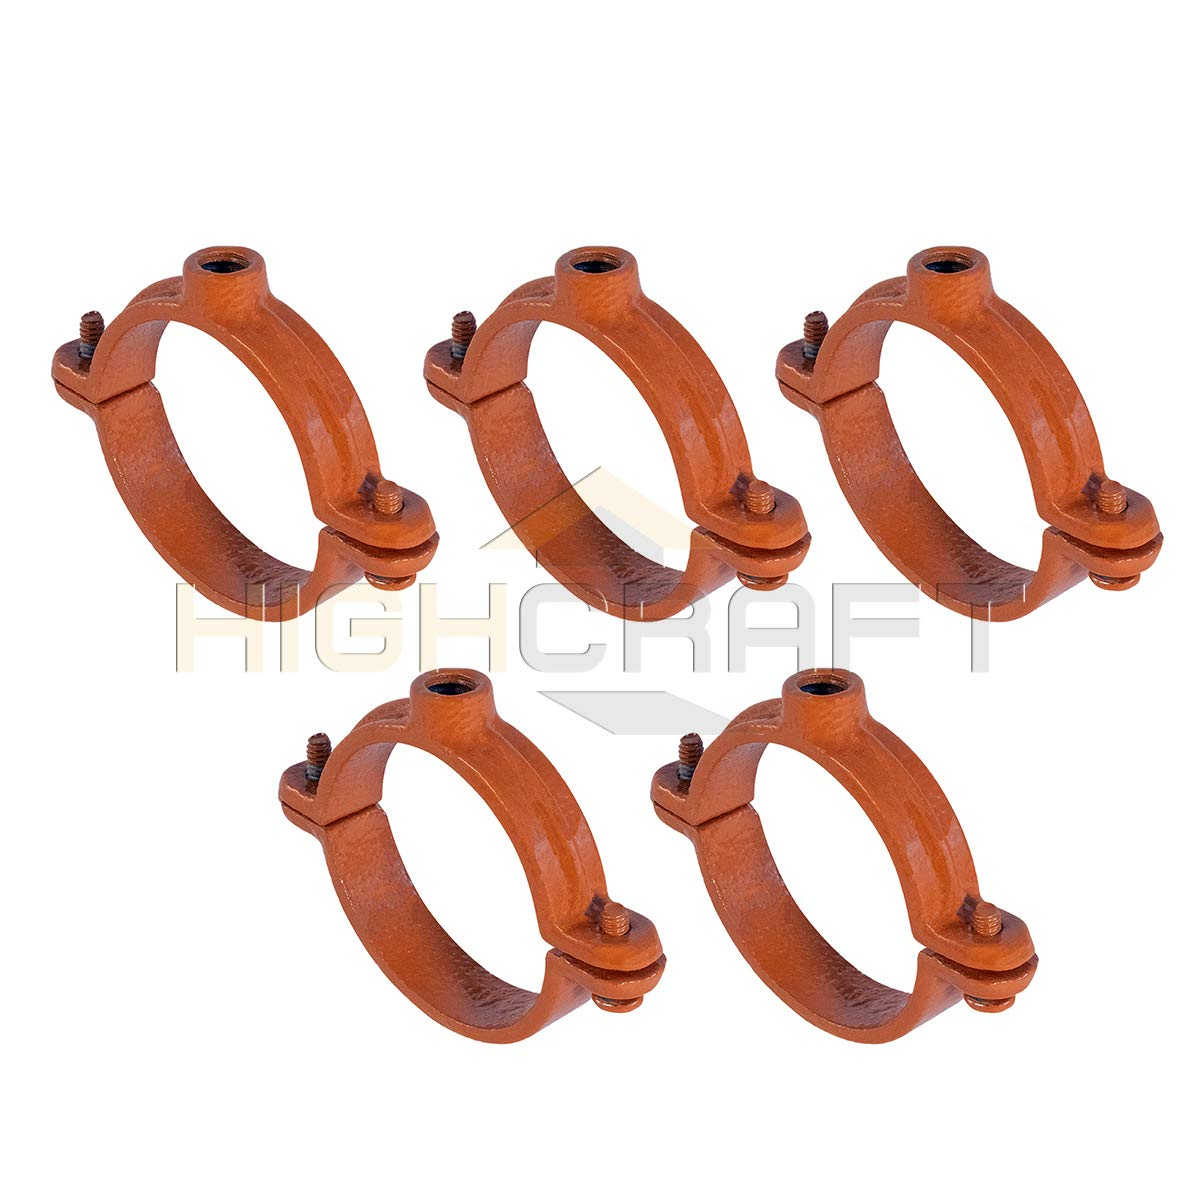 Highcraft HST-CP02-5 2PC Split Ring Pipe Hanger Copper Epoxy Coated Iron 2 in. 5 Pack by Highcraft